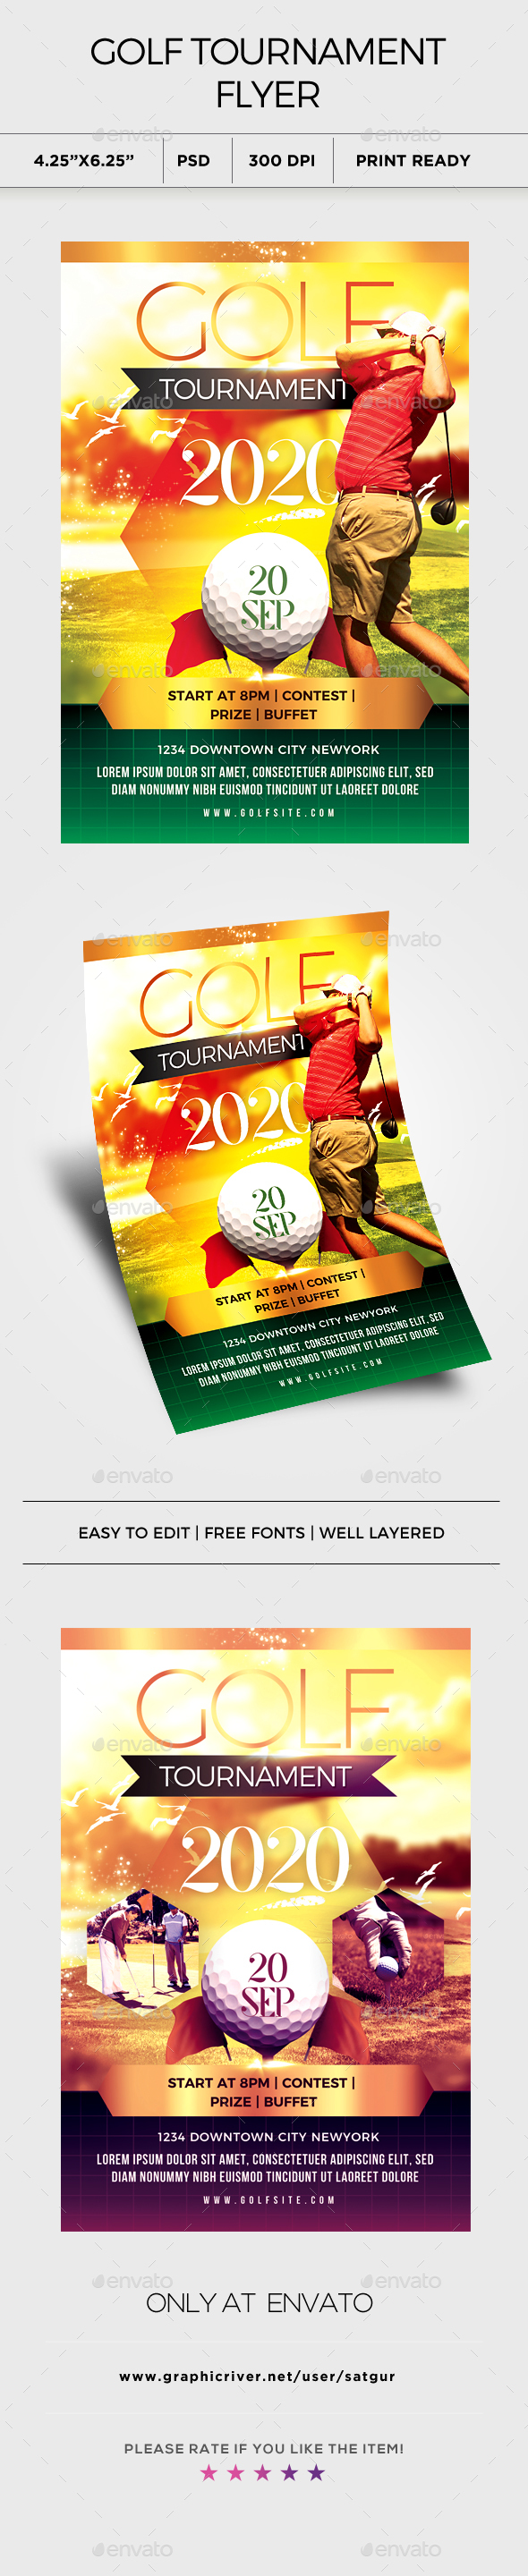 Golf Flyer Vol1 - Sports Events